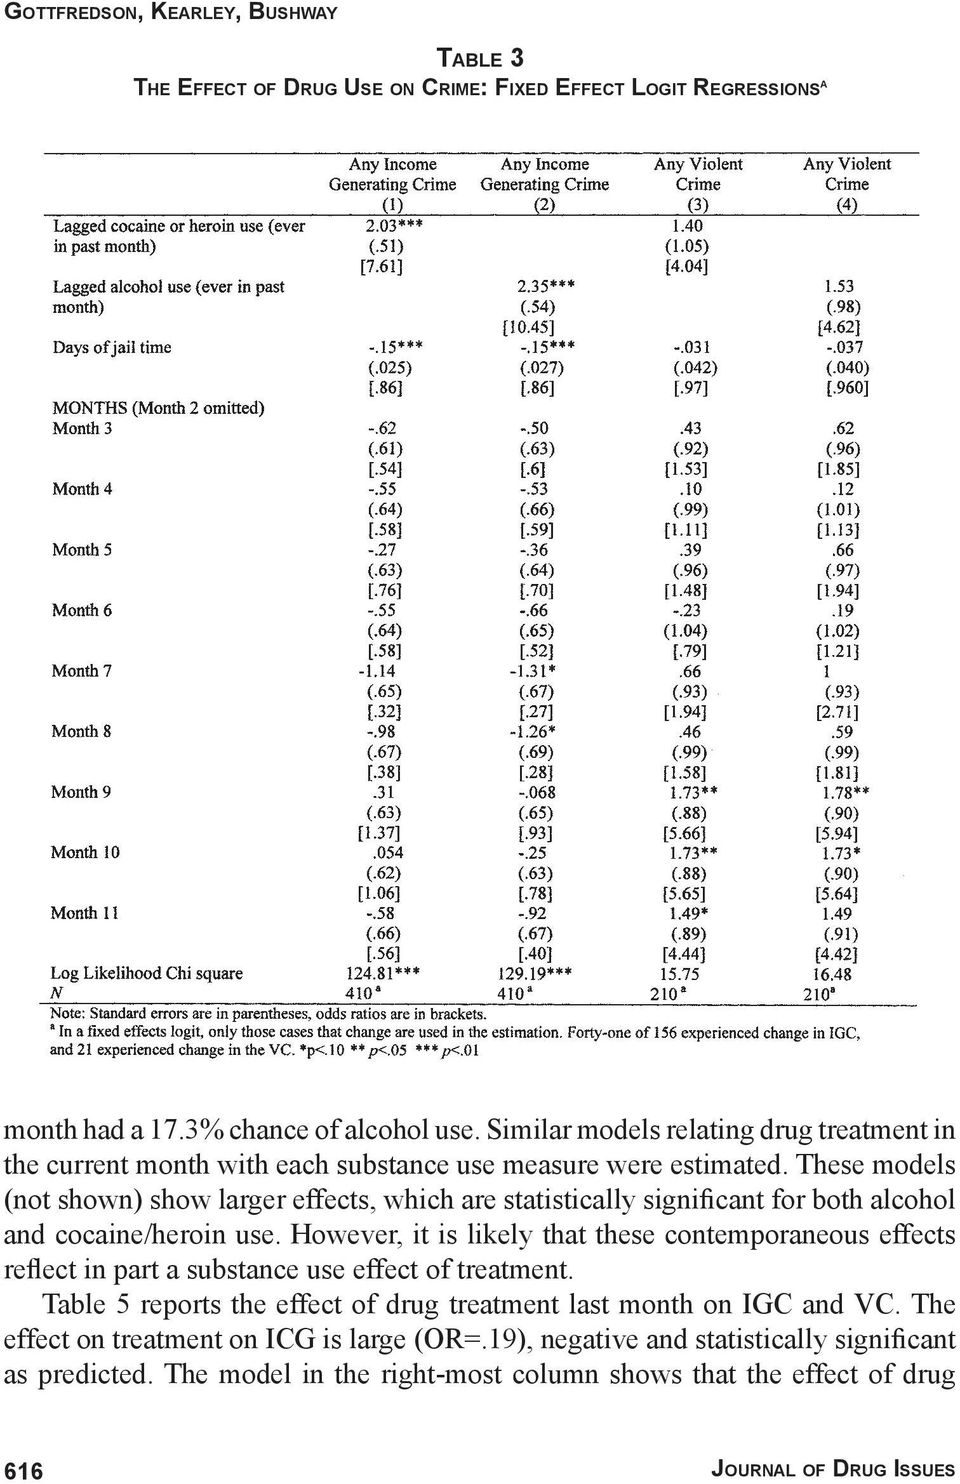 These models (not shown) show larger effects, which are statistically significant for both alcohol and cocaine/heroin use.